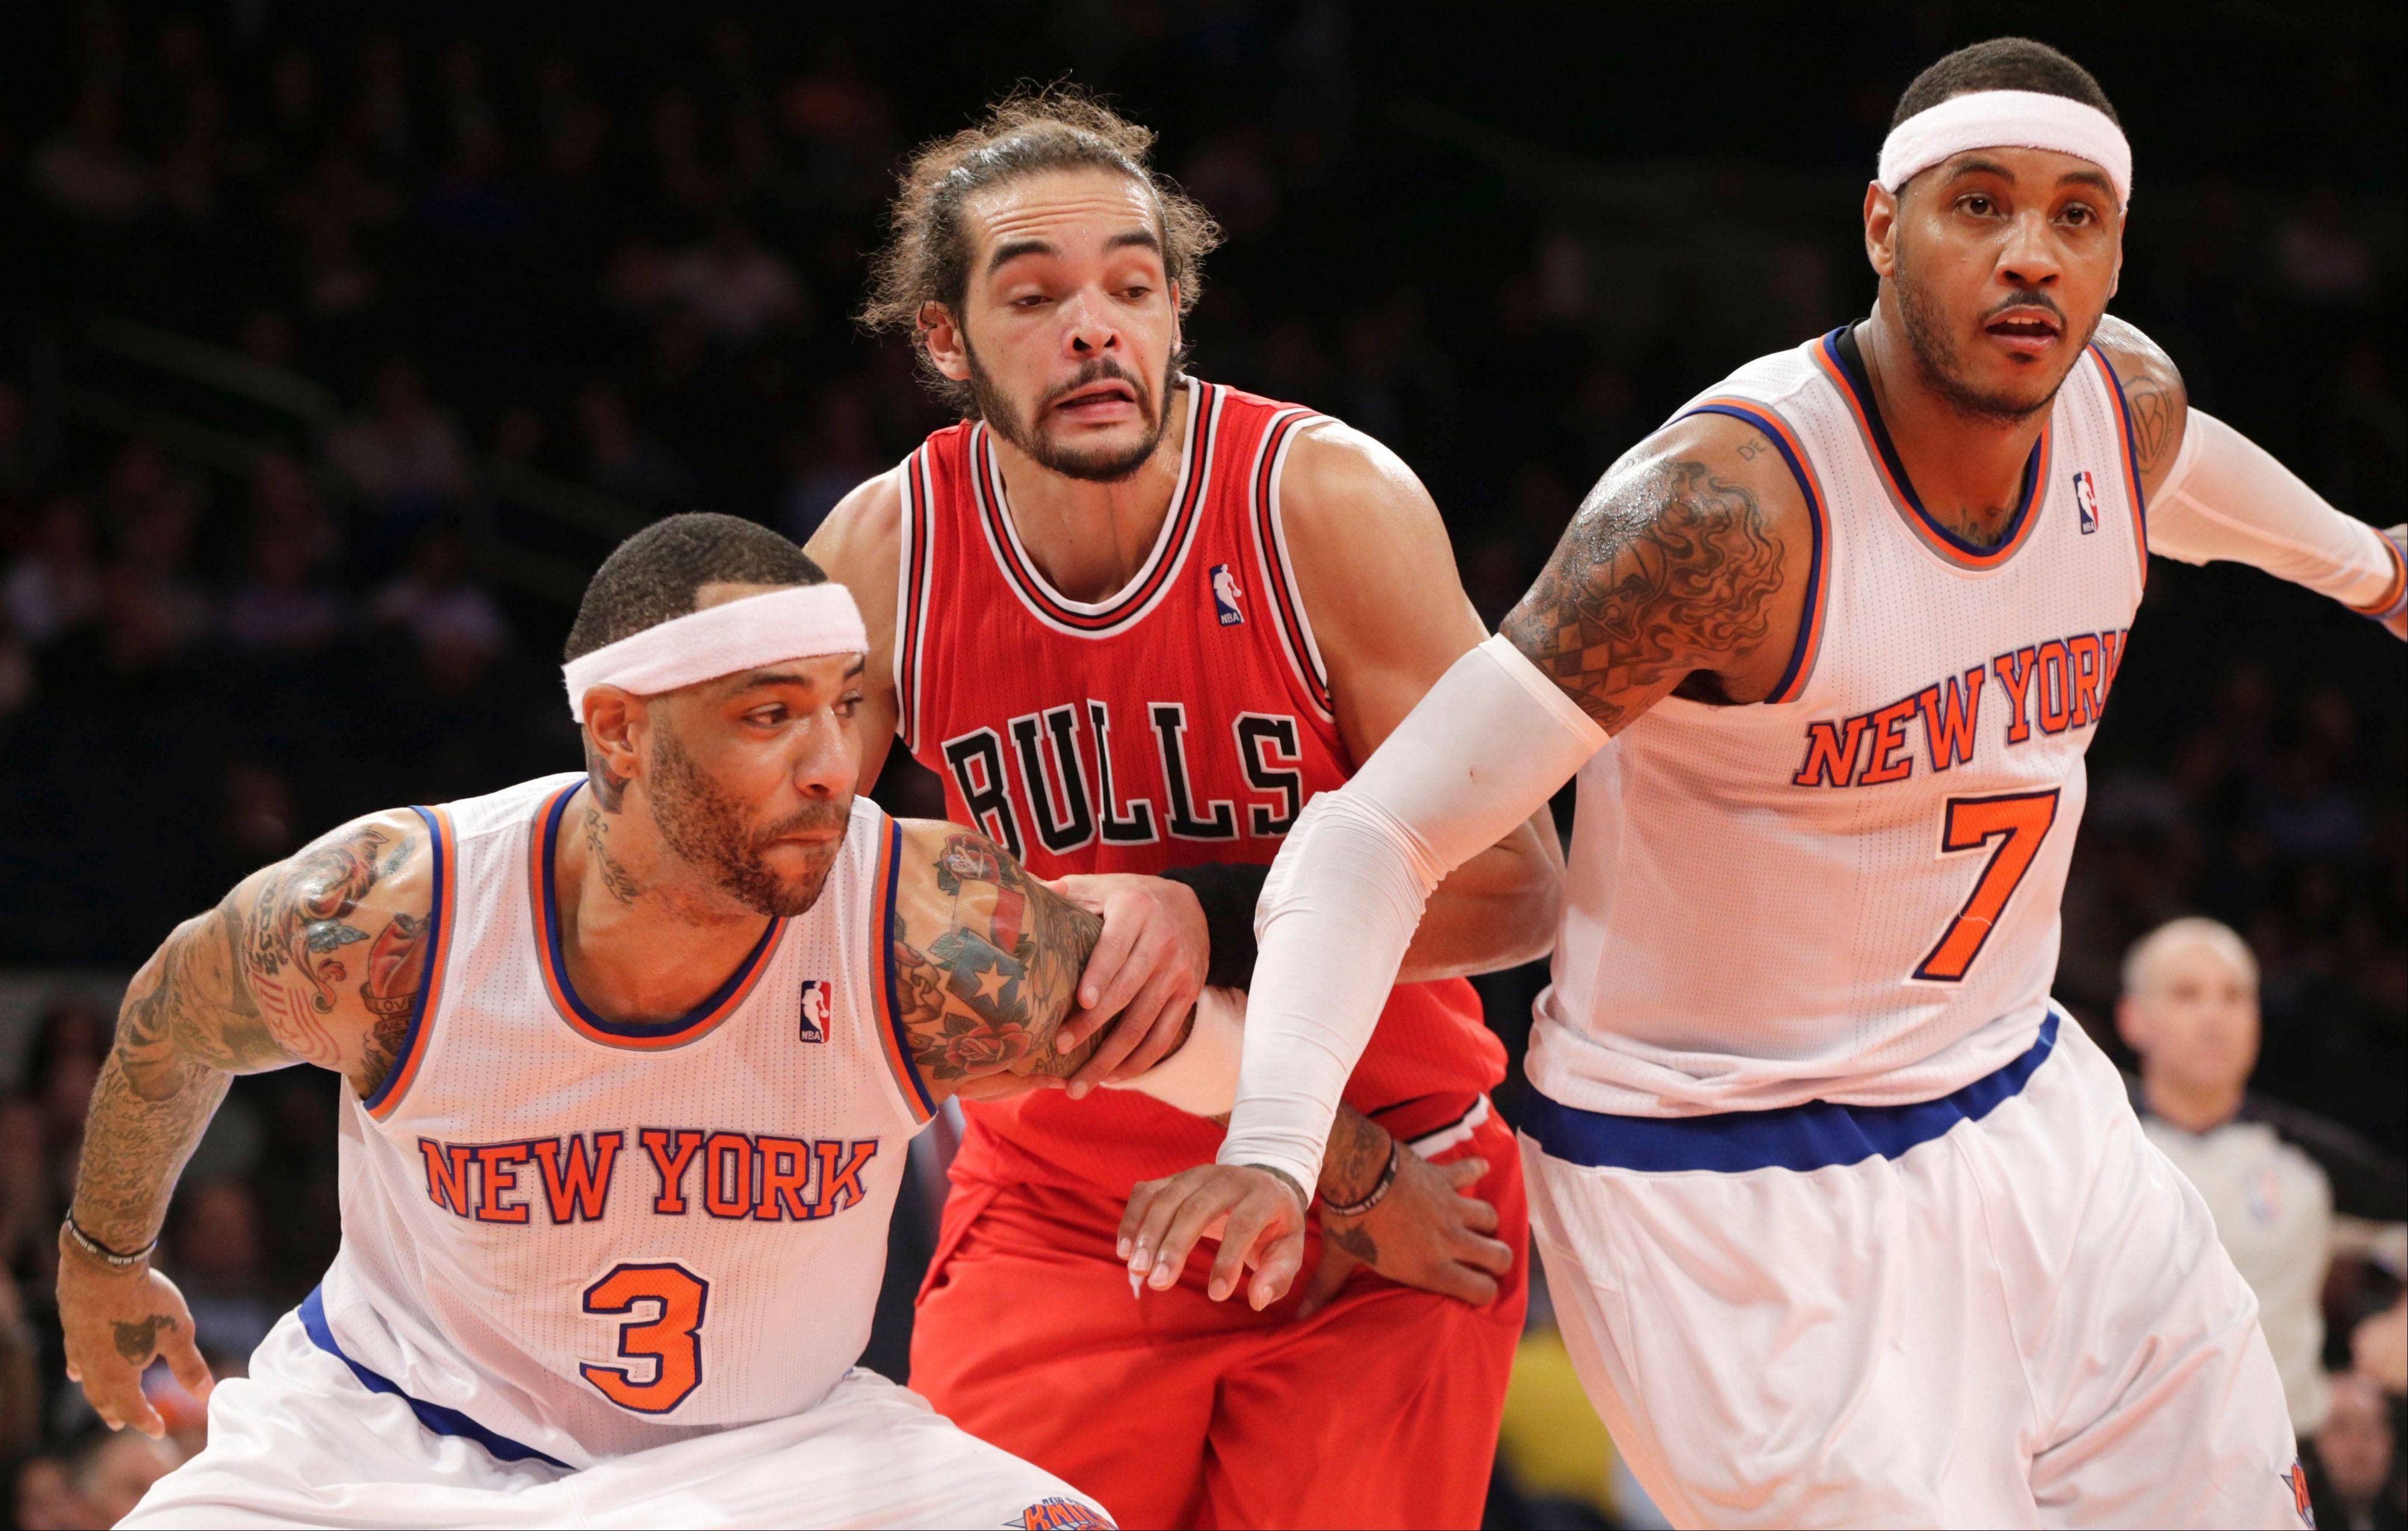 New York Knicks forward Kenyon Martin (3) and New York Knicks forward Carmelo Anthony (7) defend Bulls center Joakim Noah on a rebound in a game earlier this season.